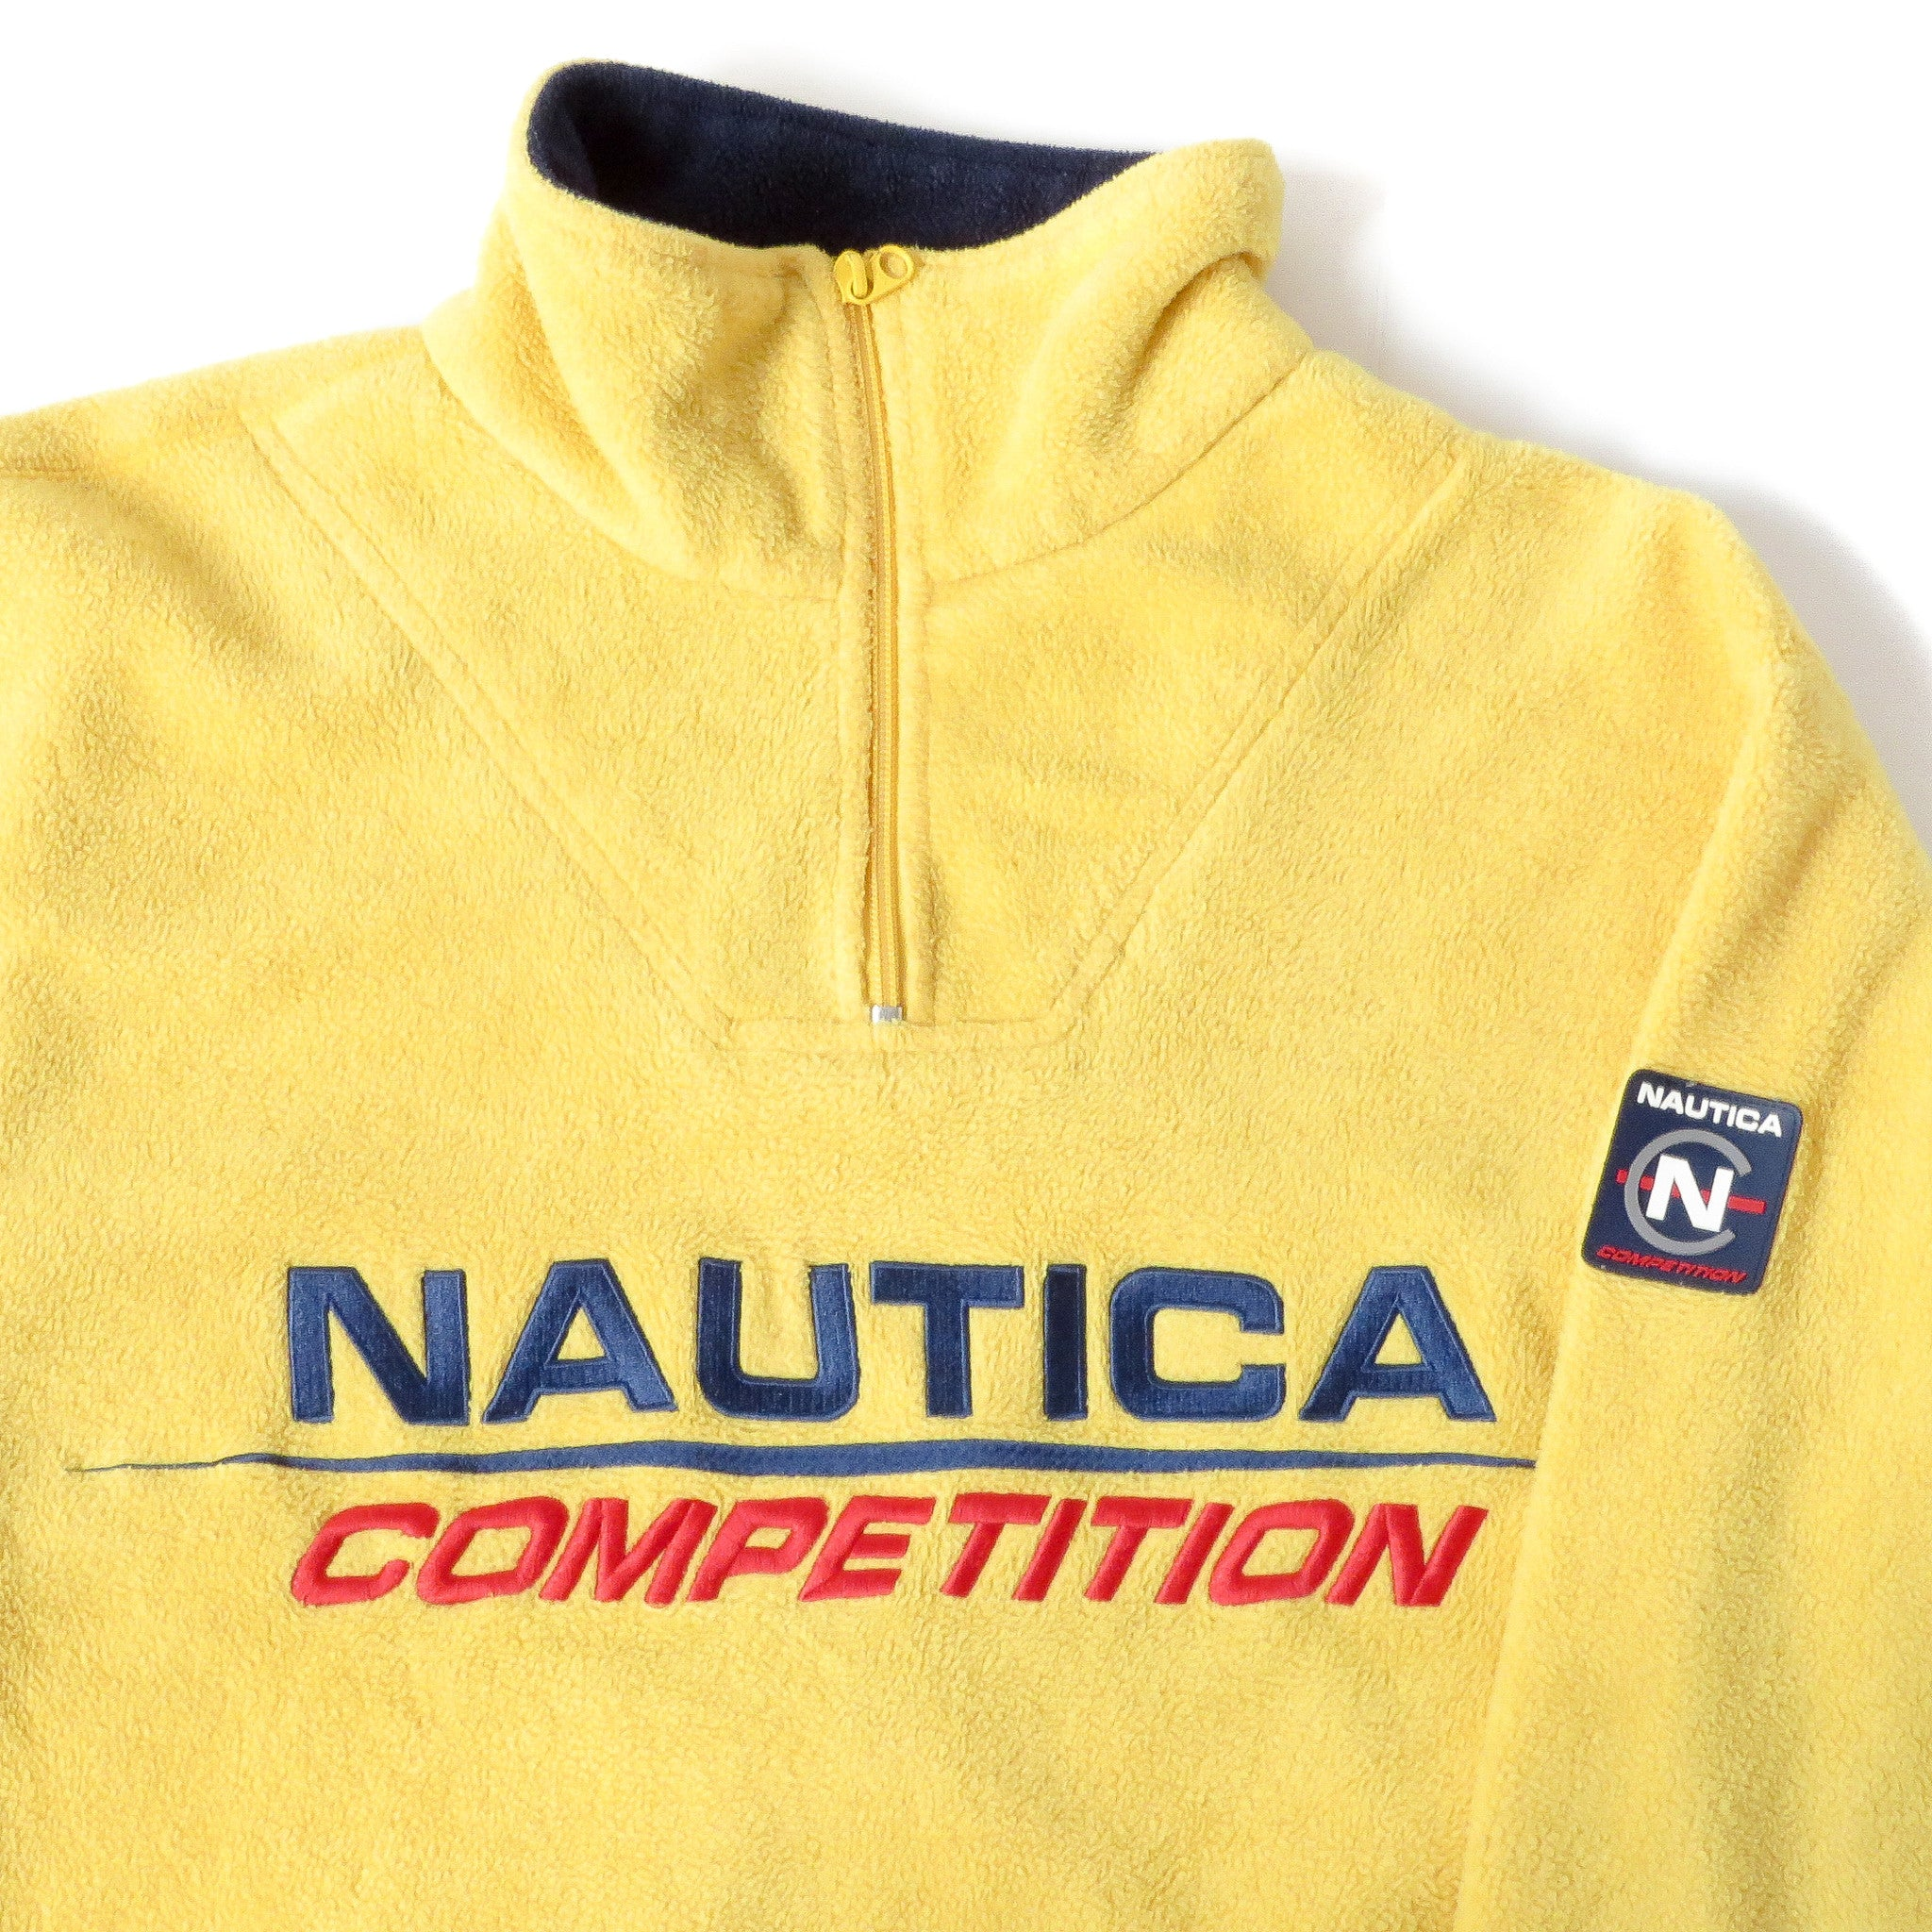 Vintage Nautica Competition Fleece Pullover Jacket Sz S